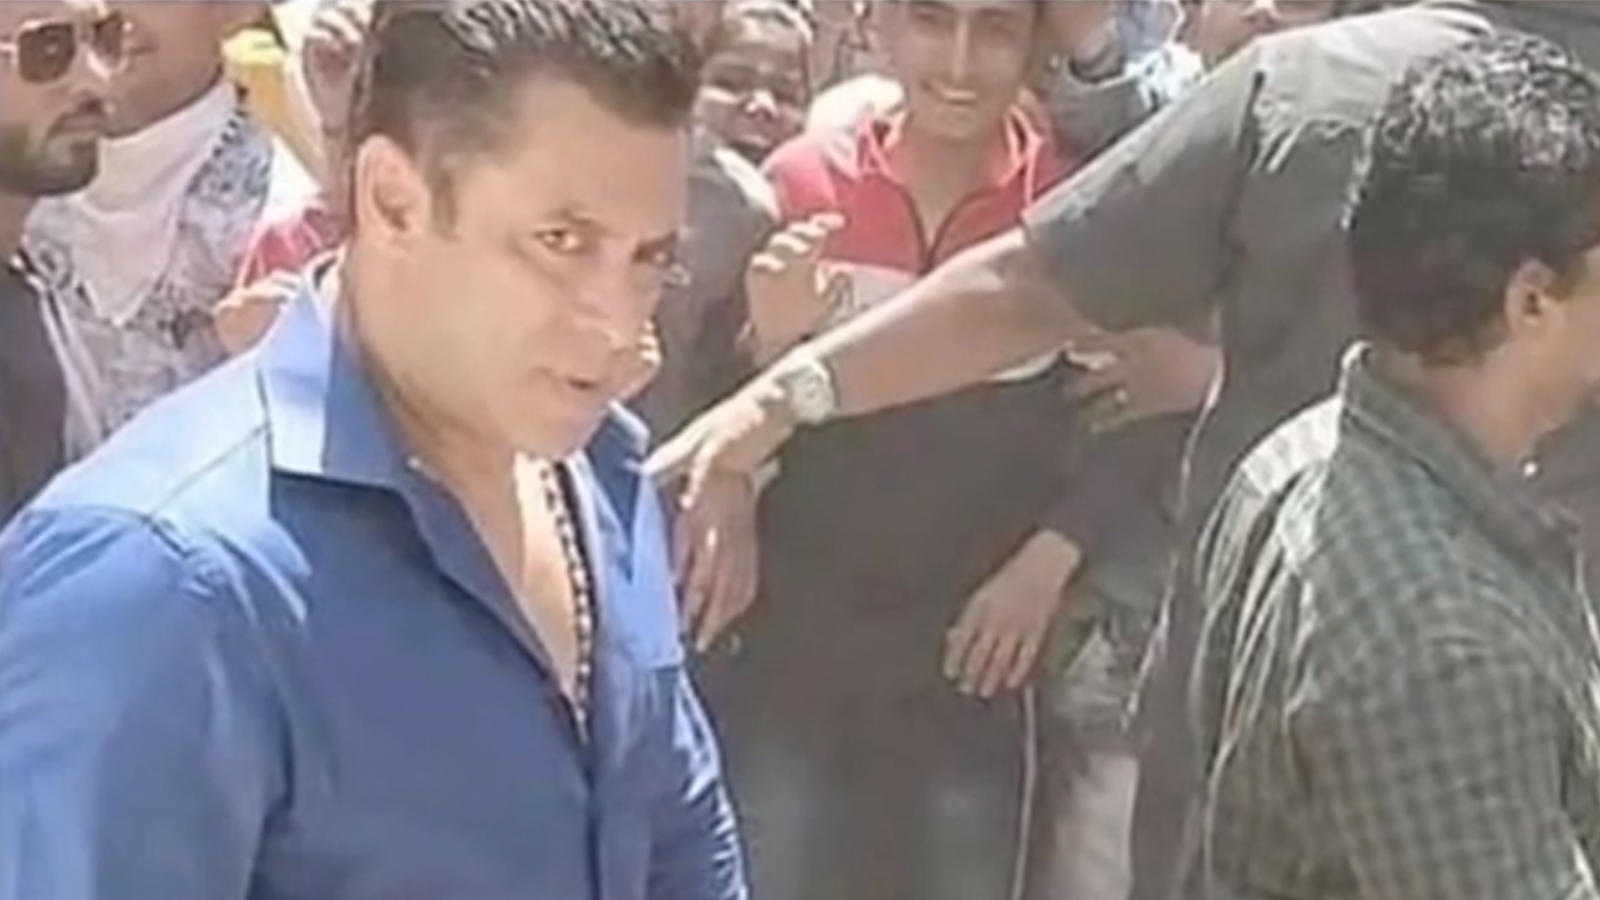 Salman Khan is angry over leaked videos from 'Dabangg 3'